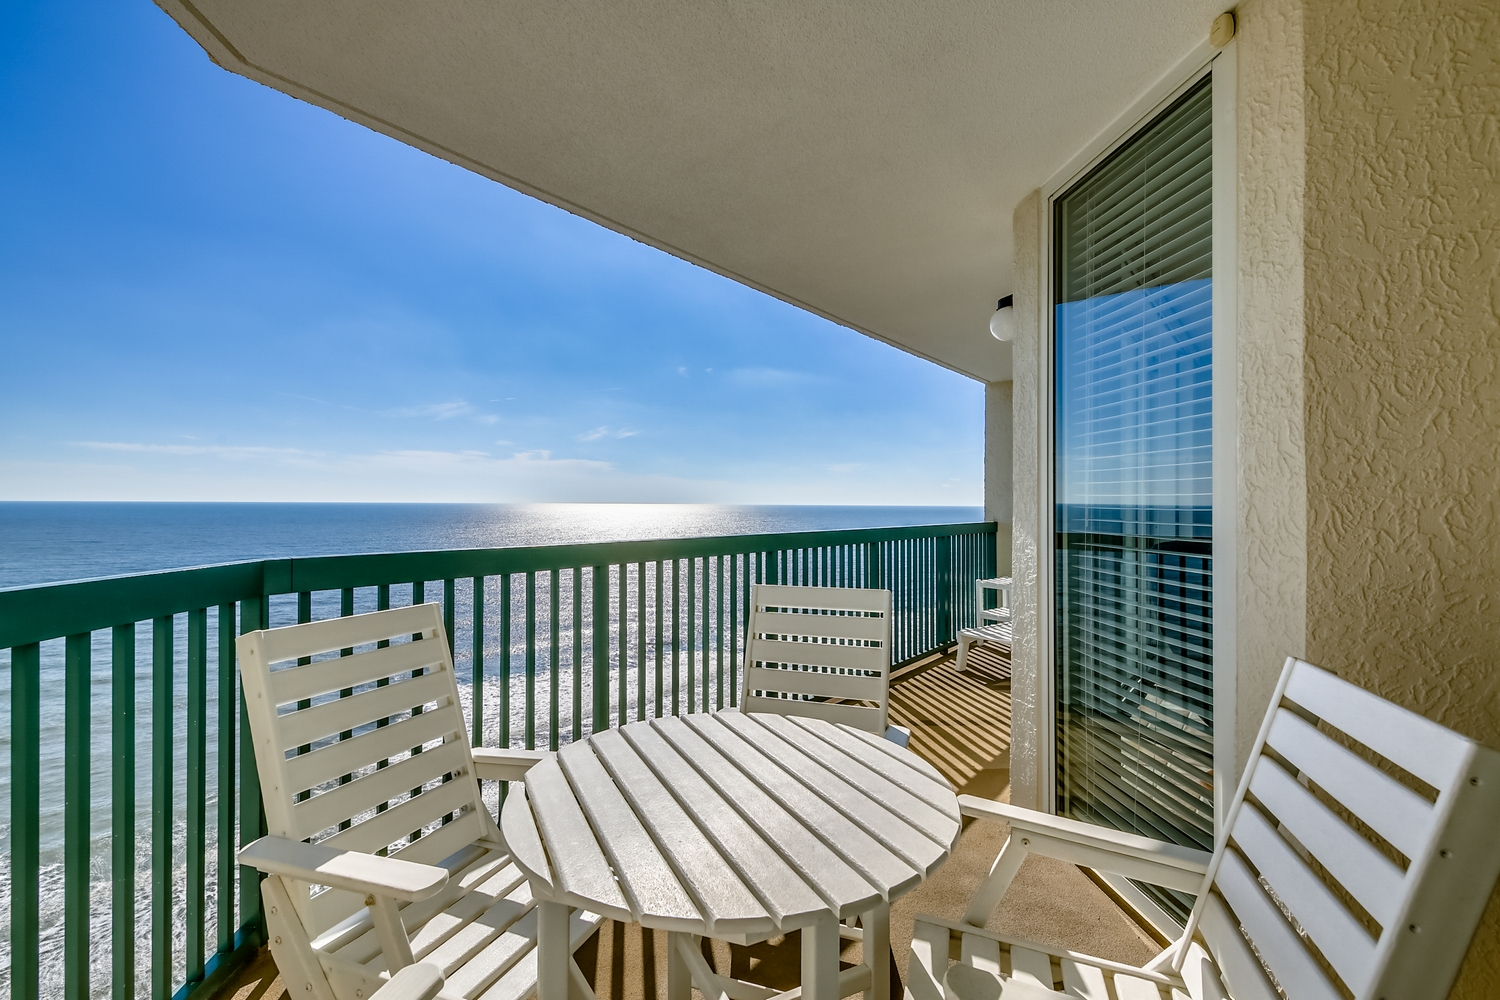 2 Bedroom Condos North Myrtle Beach 84 2 Bedroom Condos In Myrtle Beach Sc Located In North